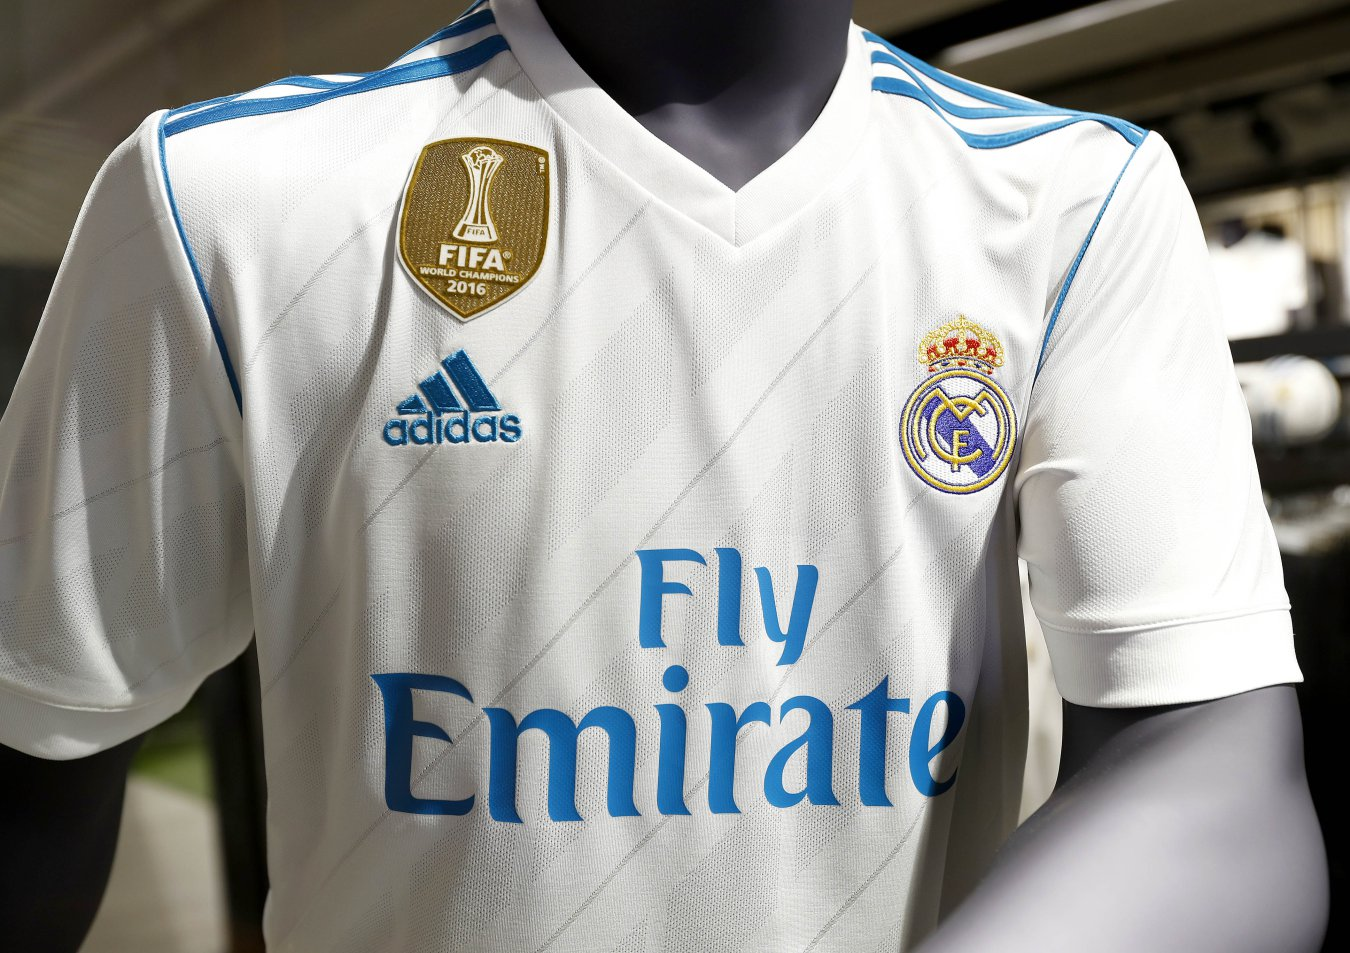 El Real Madrid presenta sus camisetas para la 2017-2018 - AS.com 32e399f0c5a24